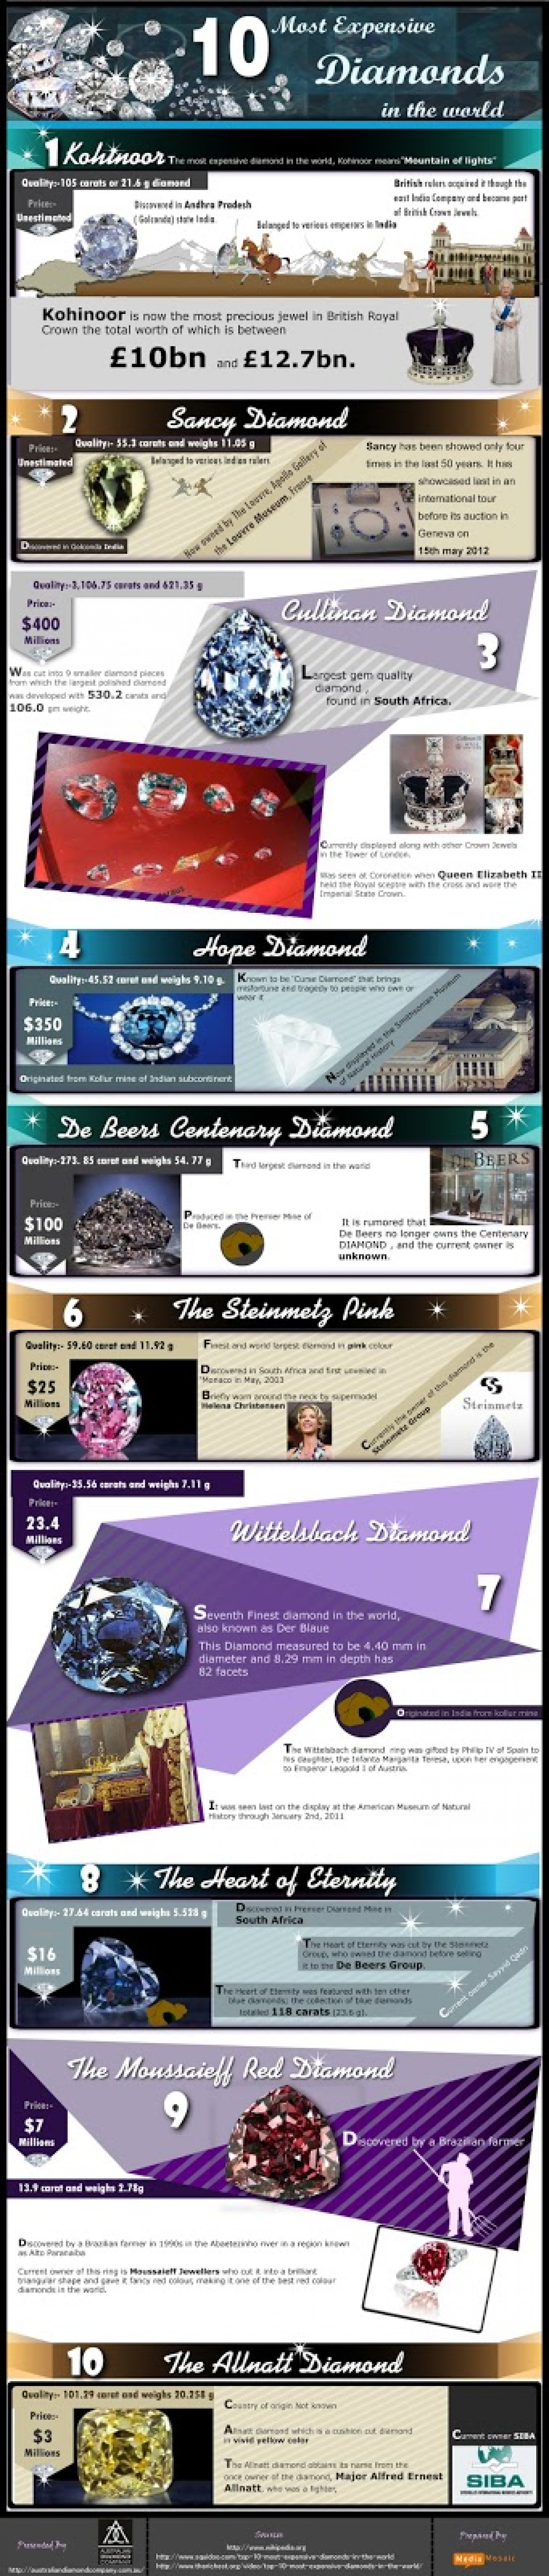 10 Most Expensive Diamonds in the World Infographic